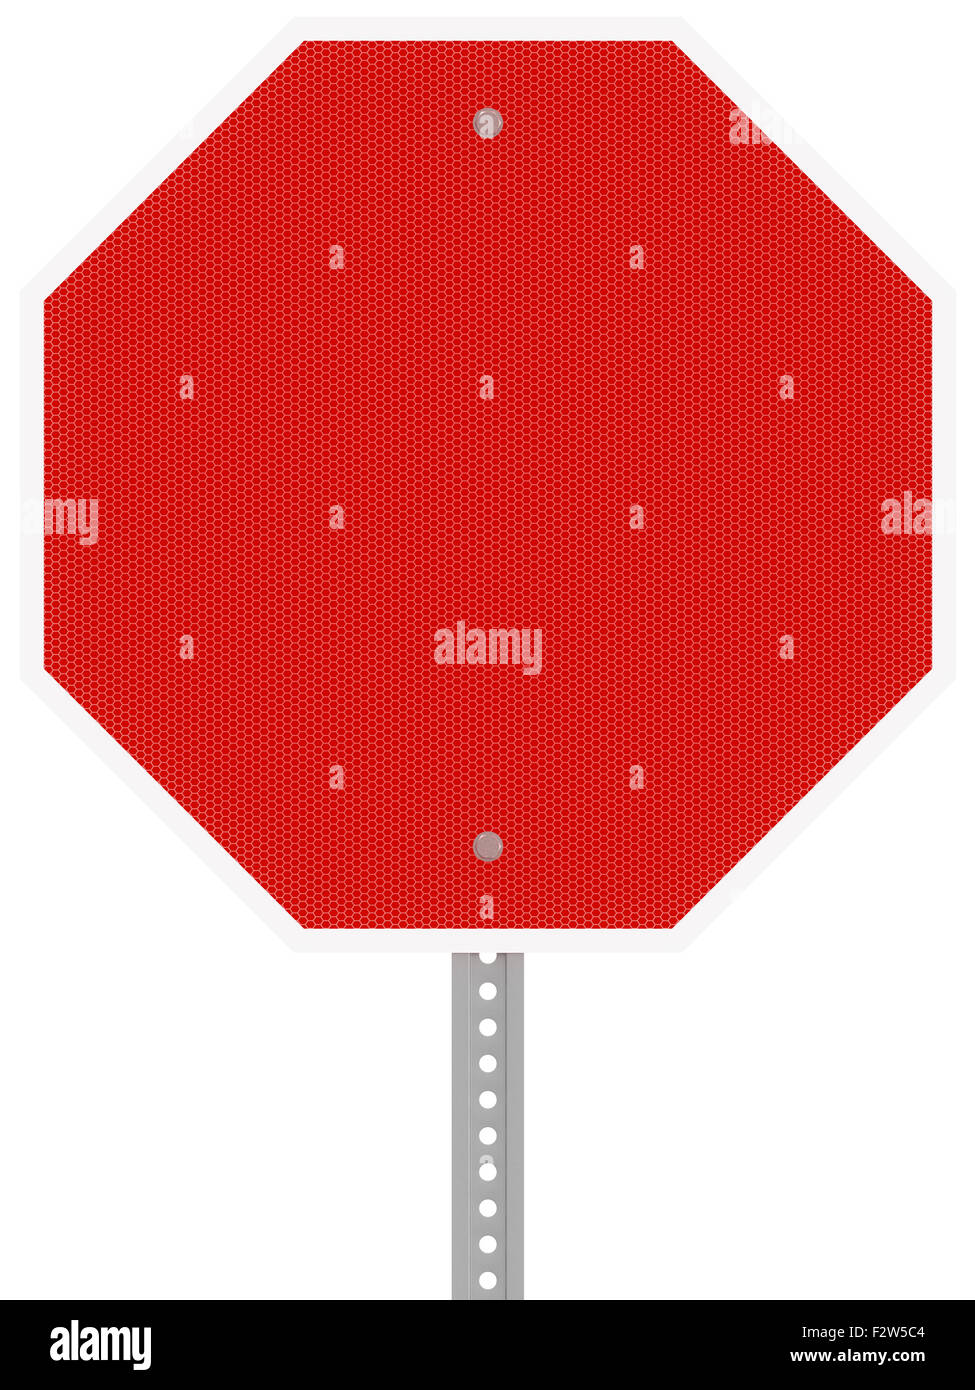 Red reflective hexagon stop sign isolated on a white background. - Stock Image